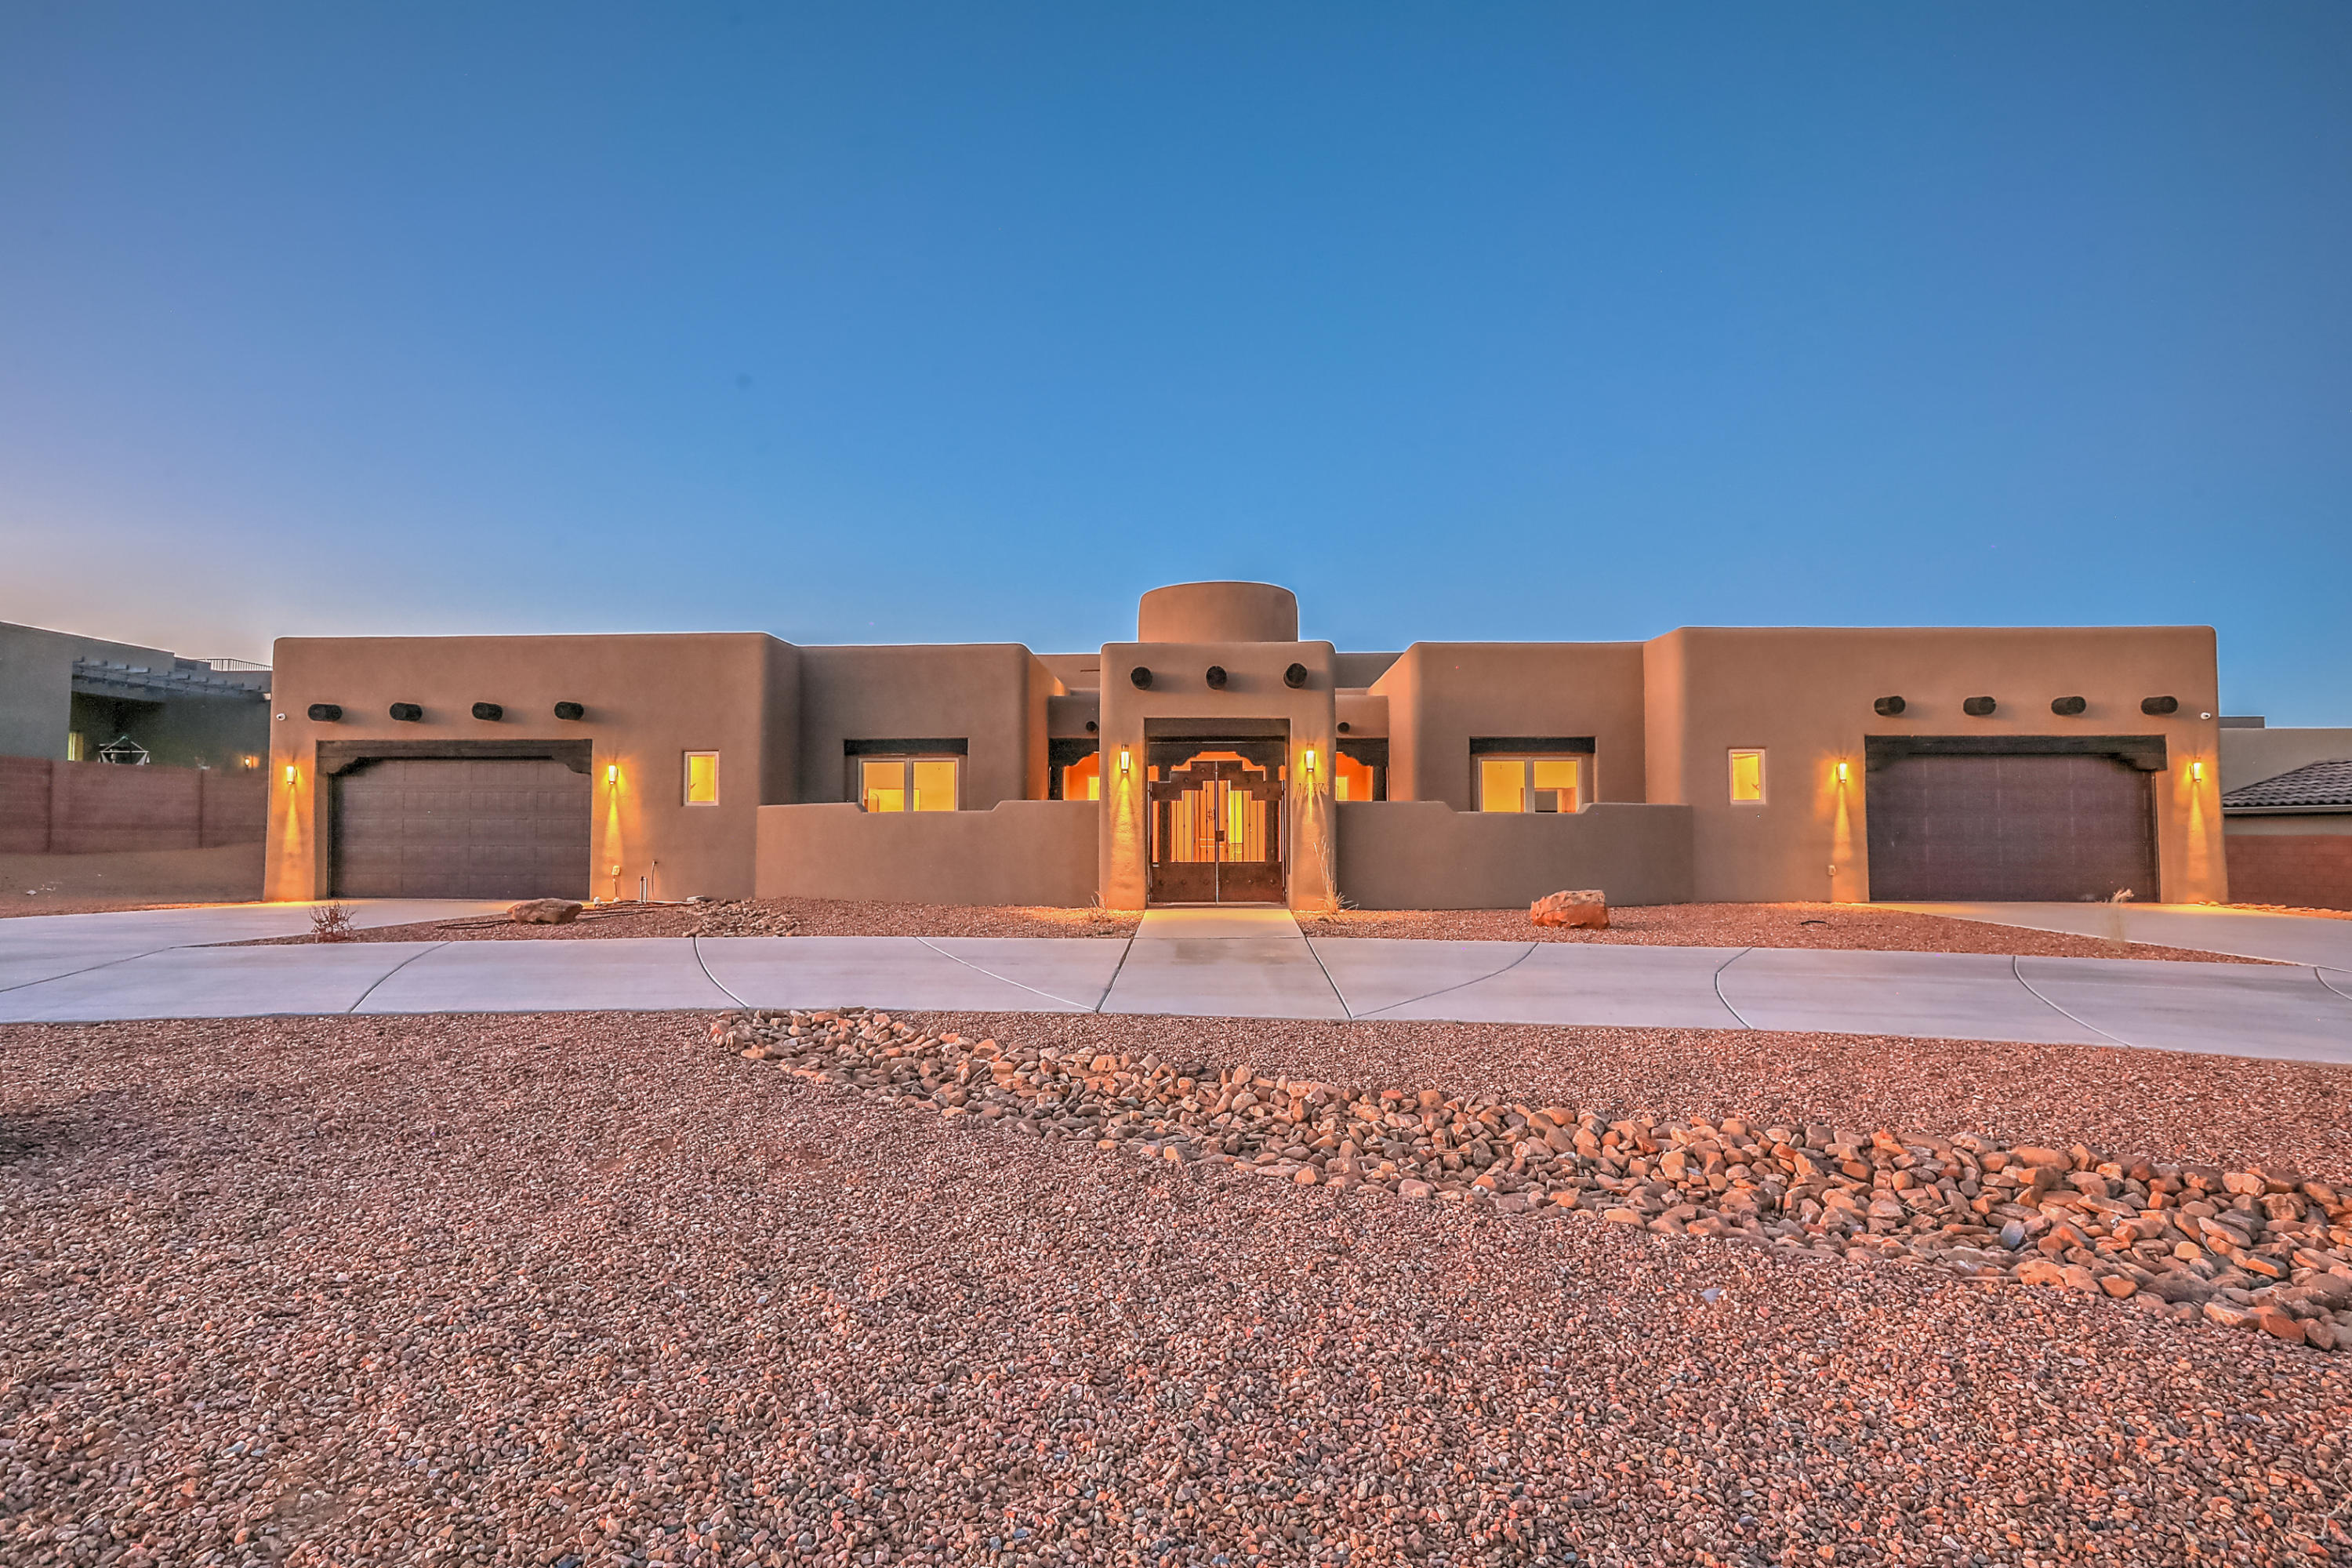 Custom designed and built by Crescent Homes, this stunning one-of-a-kind home sits on a full one-acre lot in the heart of Rio Rancho, a stone's throw from Rust Presbyterian Hospital. From the moment you enter the grand rotunda entry way with its solid wood ceiling and central fountain you experience the wonderment. Relax in front of the fire in the main living area. Everyone will want to gather around and sit at the center island in the gourmet kitchen with all the bells and whistles to be expected. Designer cabinets, granite counters, and gas cooktop.Privacy for all in the four bedrooms, all en-suite and fitted with luxurious finishes and large closets, all grand enough to each be a master. Two laundry rooms for convenience. Large covered patio to enjoy the views and party galore.